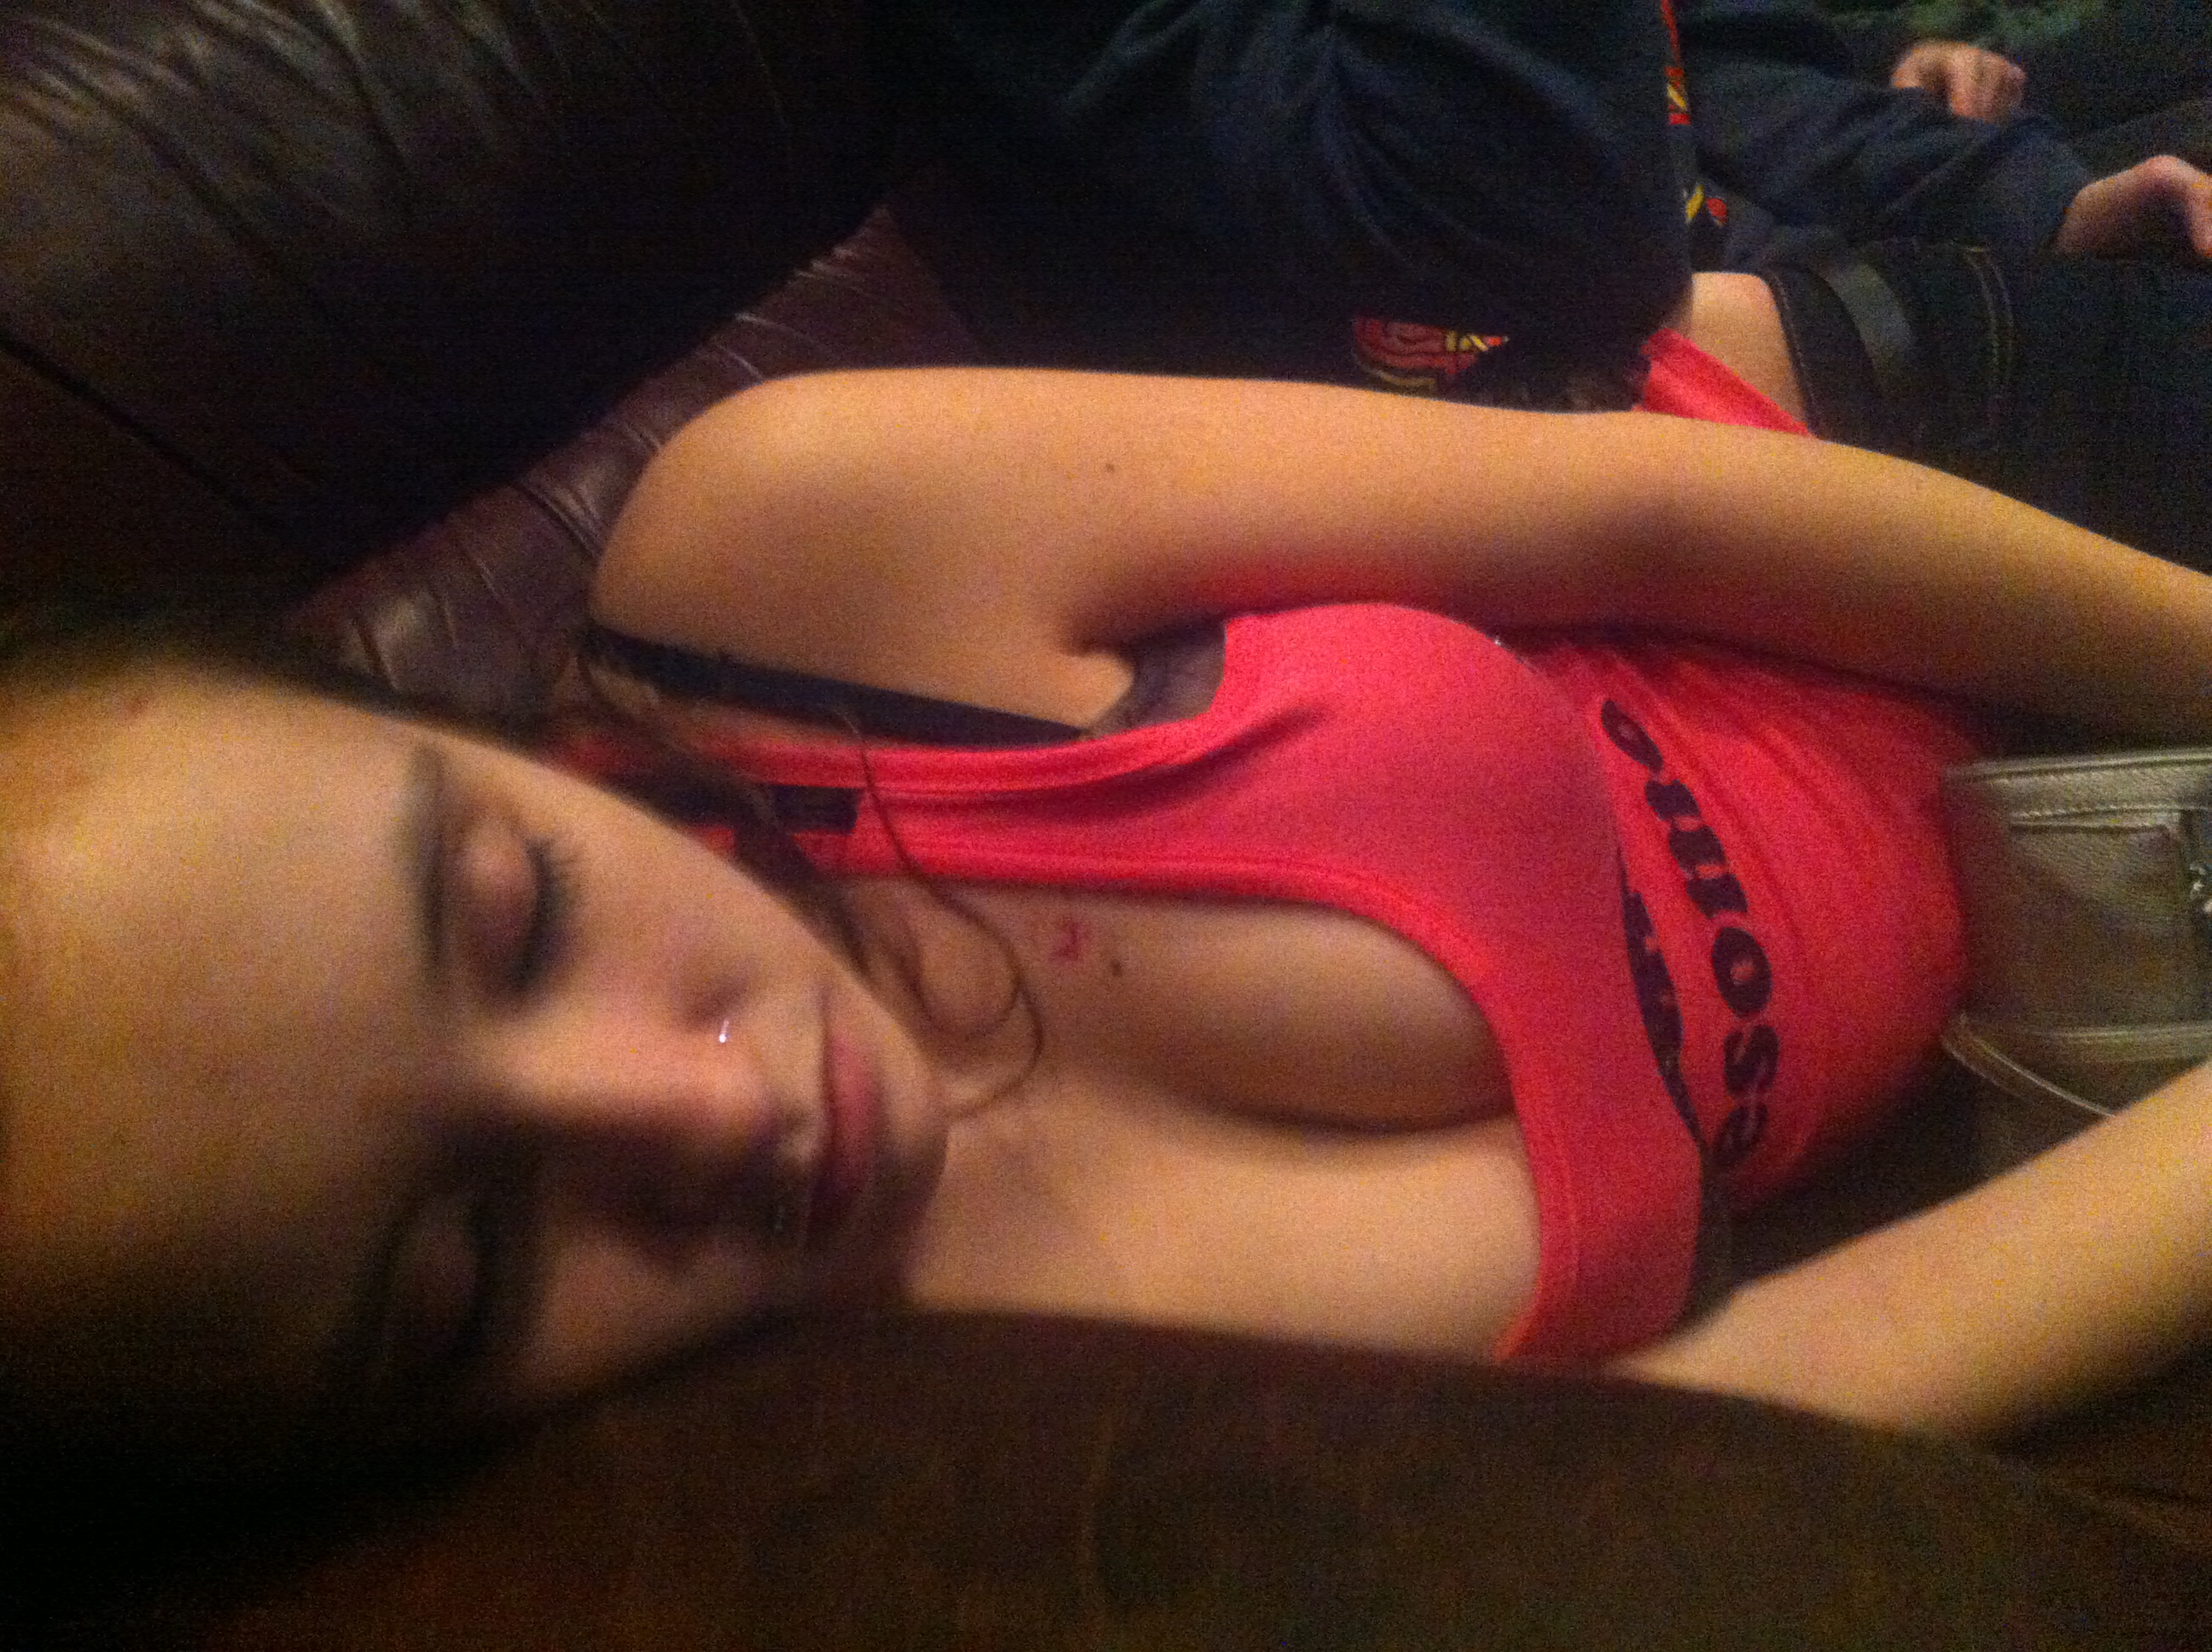 Passed out huge tits